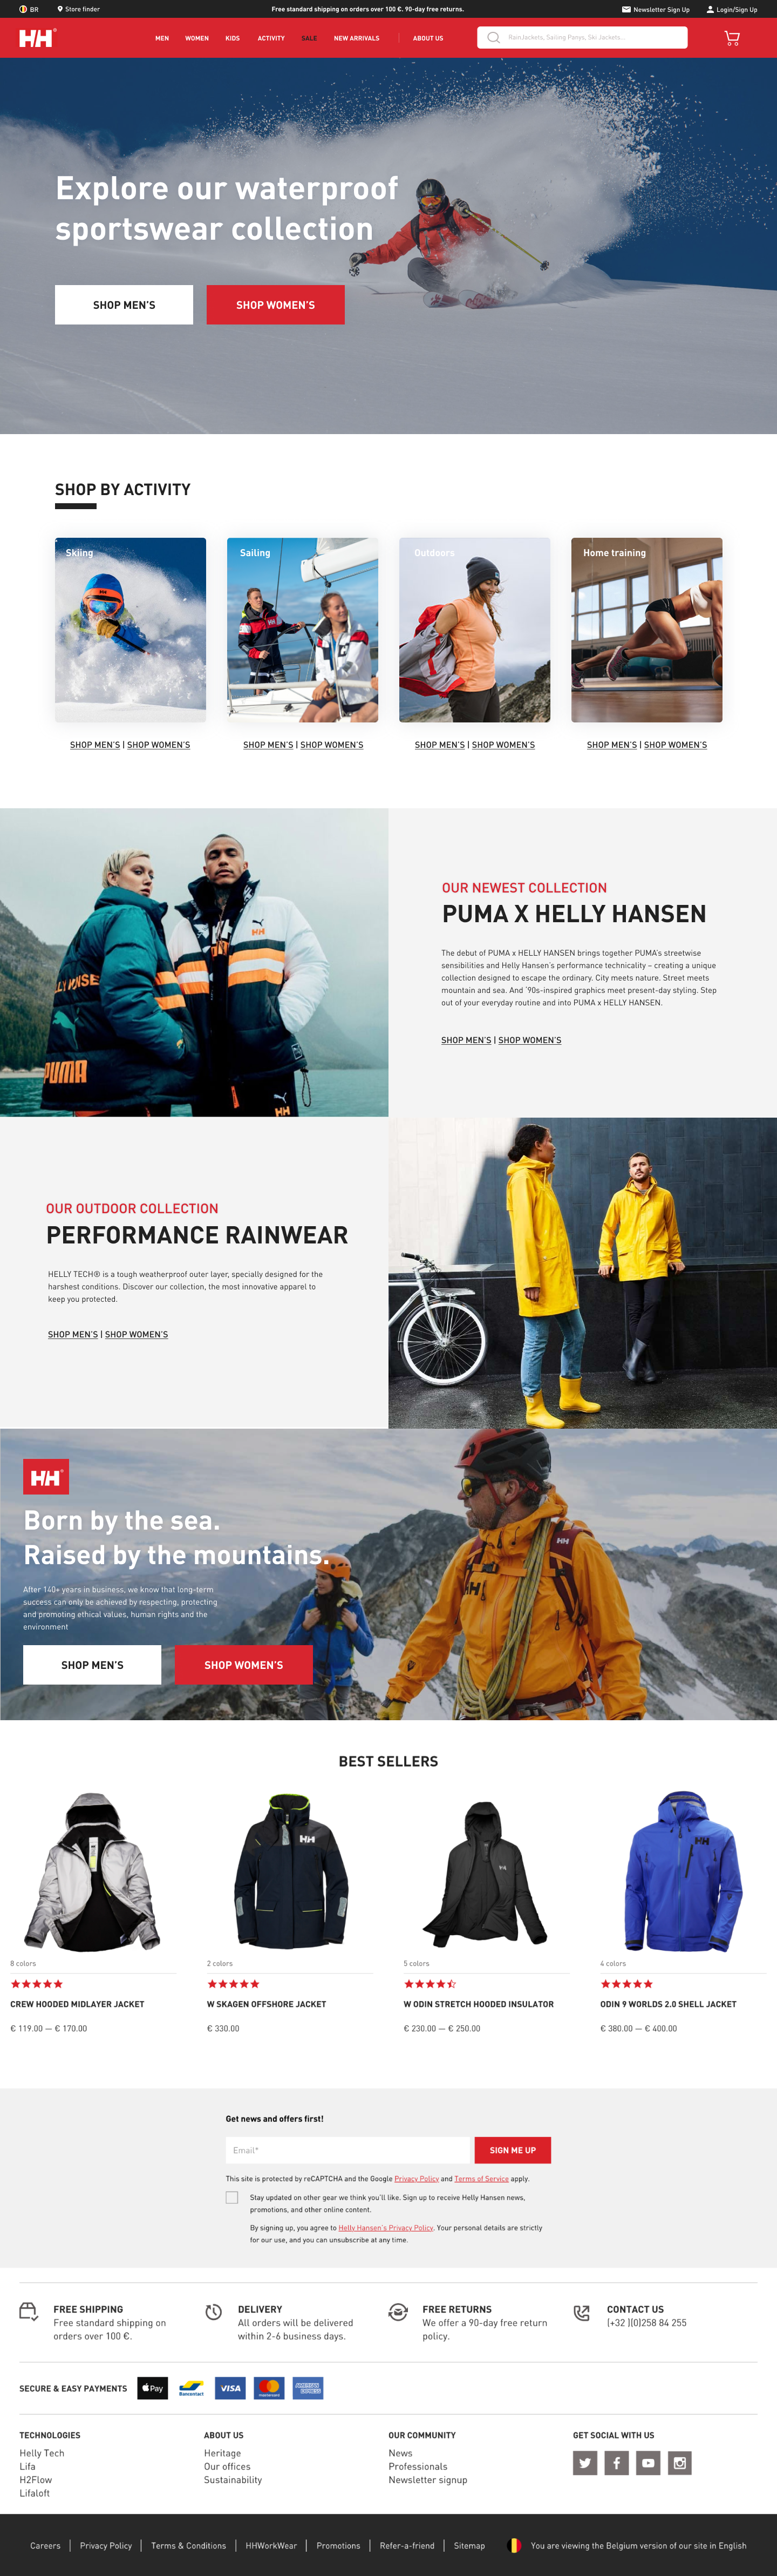 Helly Hansen's home page - after